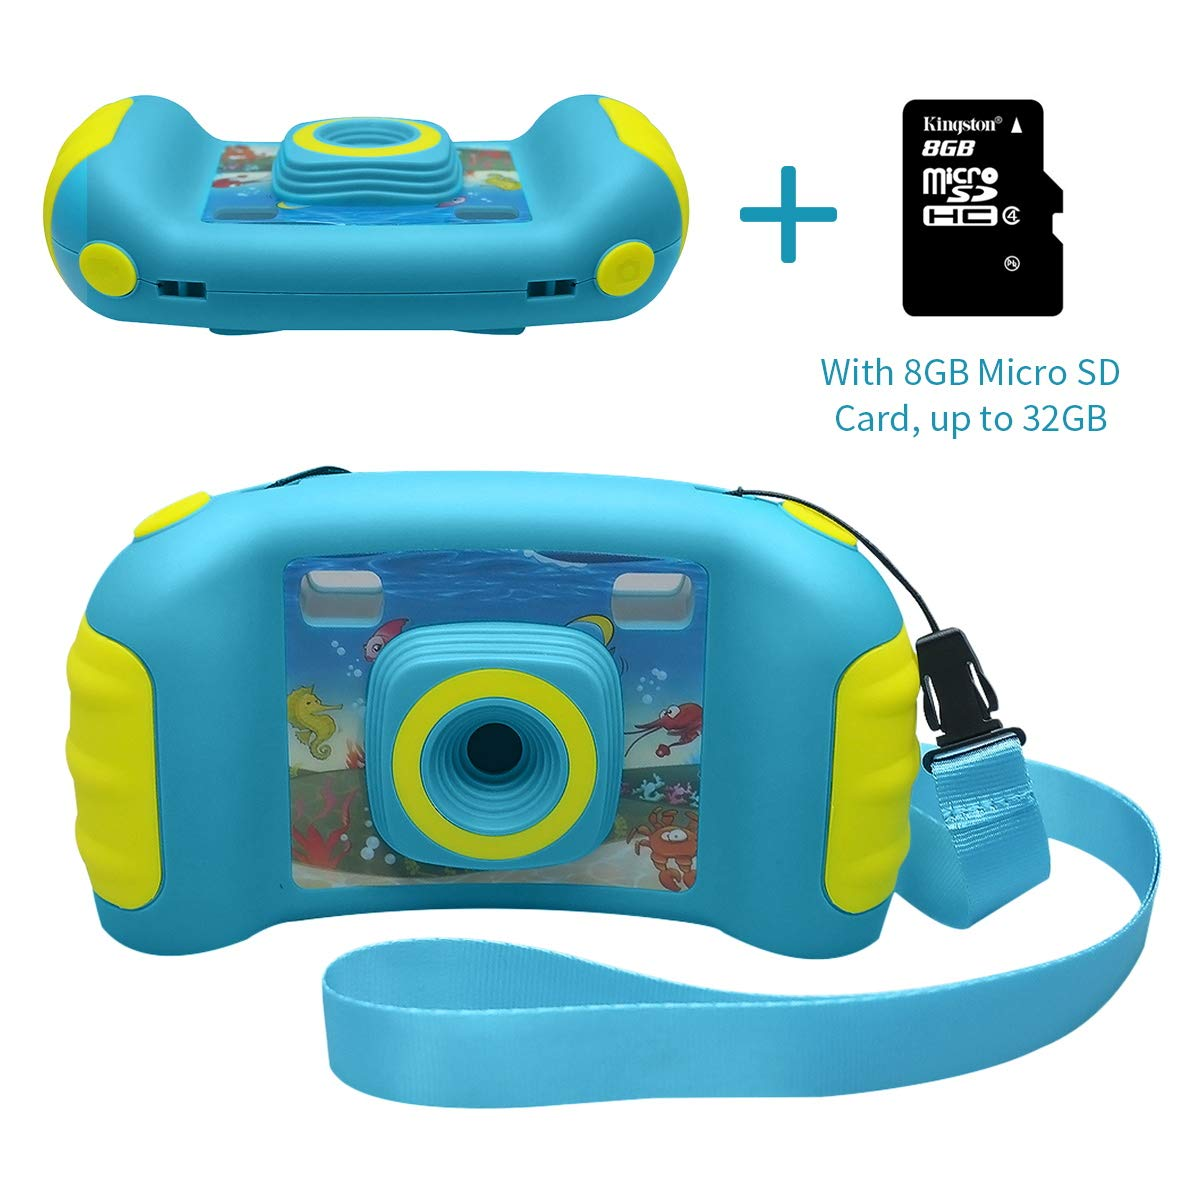 HankeRobotics Kids Digital Camera, with 8GB Micro SD Card, Kids Digital Photo/Video Camera with 4X Zoom, 1.7 Inch Screen Screen Action Camera Camcorder for Children Boys Girls Birthday Gift,Blue by HankeRobotics (Image #8)